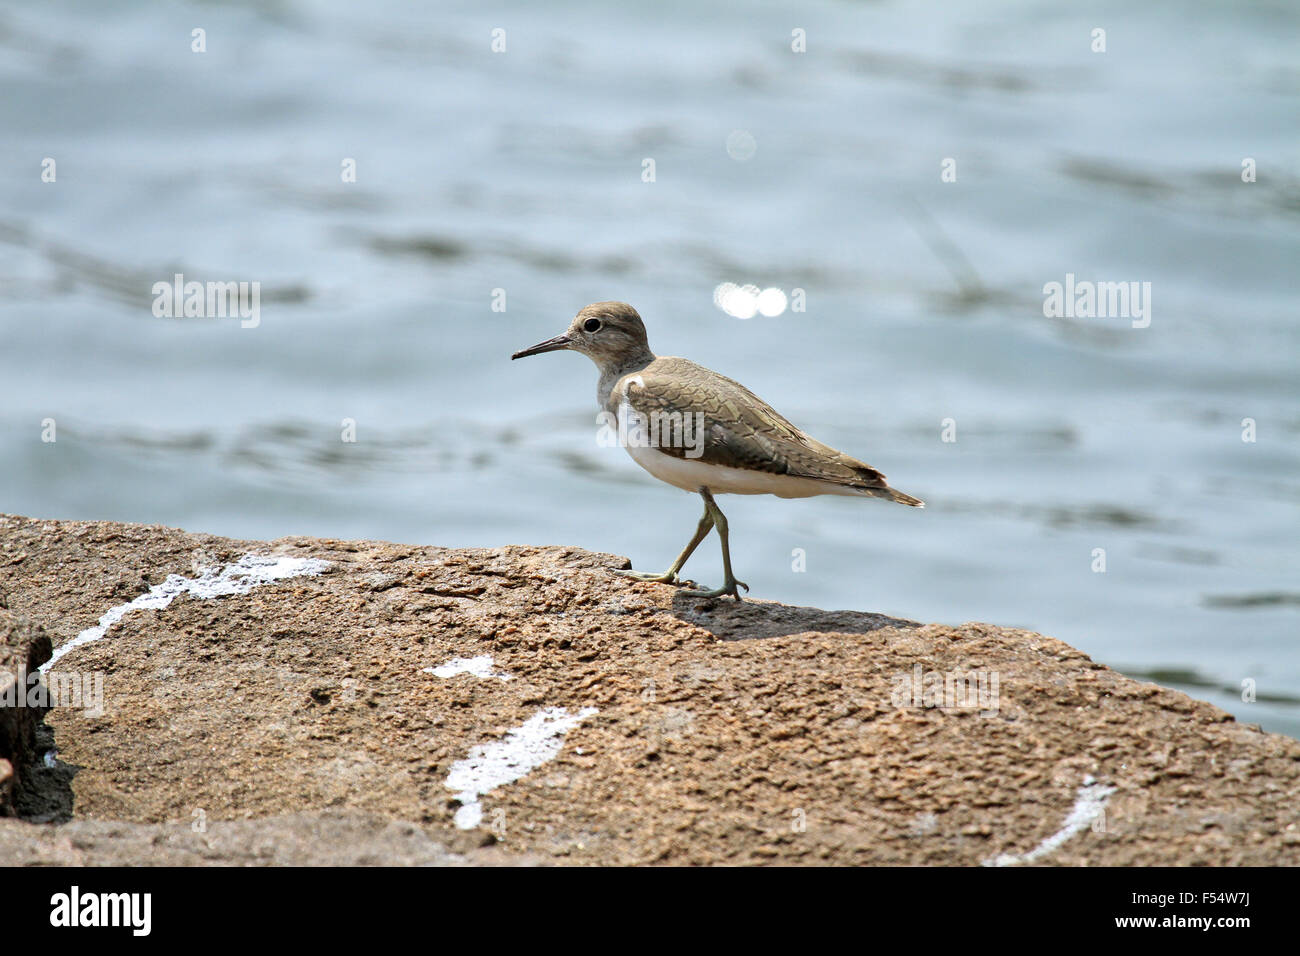 The common sandpiper (Actitis hypoleucos) is a small Palearctic wader. - Stock Image